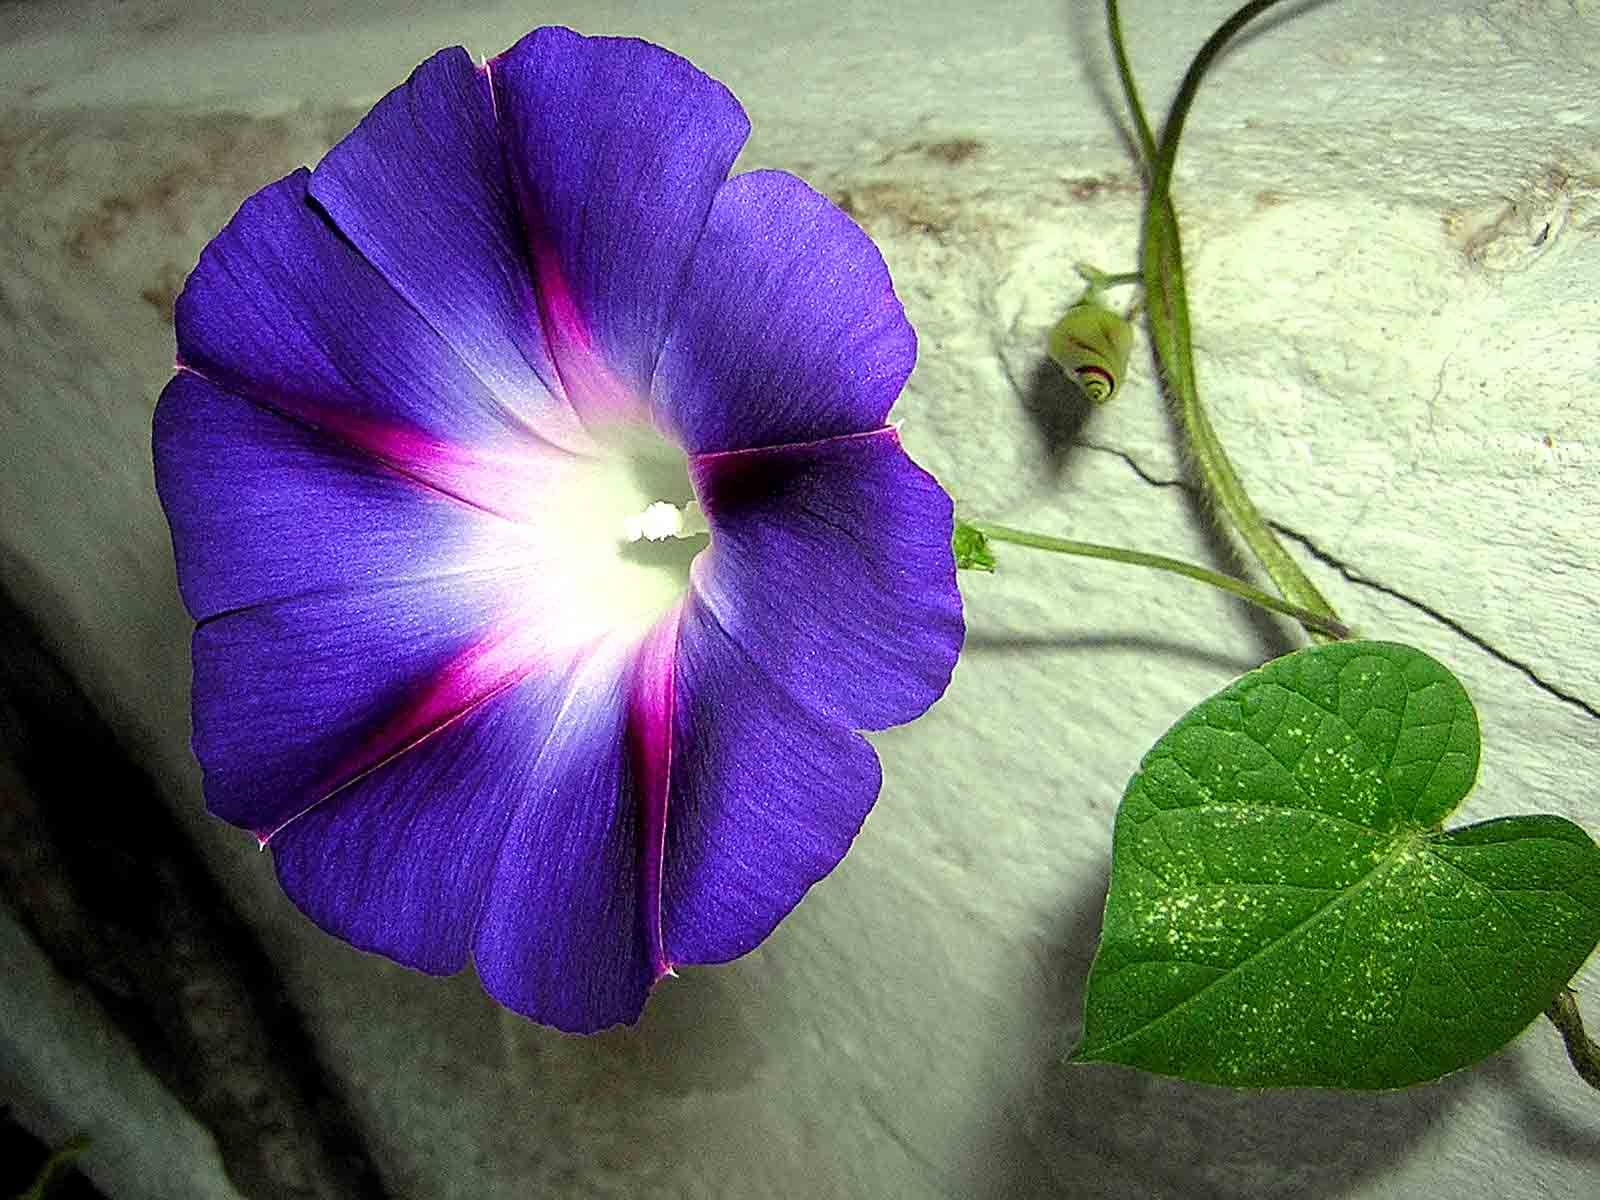 Ipomoea Morning Glory Morning Glory Flowers Morning Glory Seeds Morning Glory